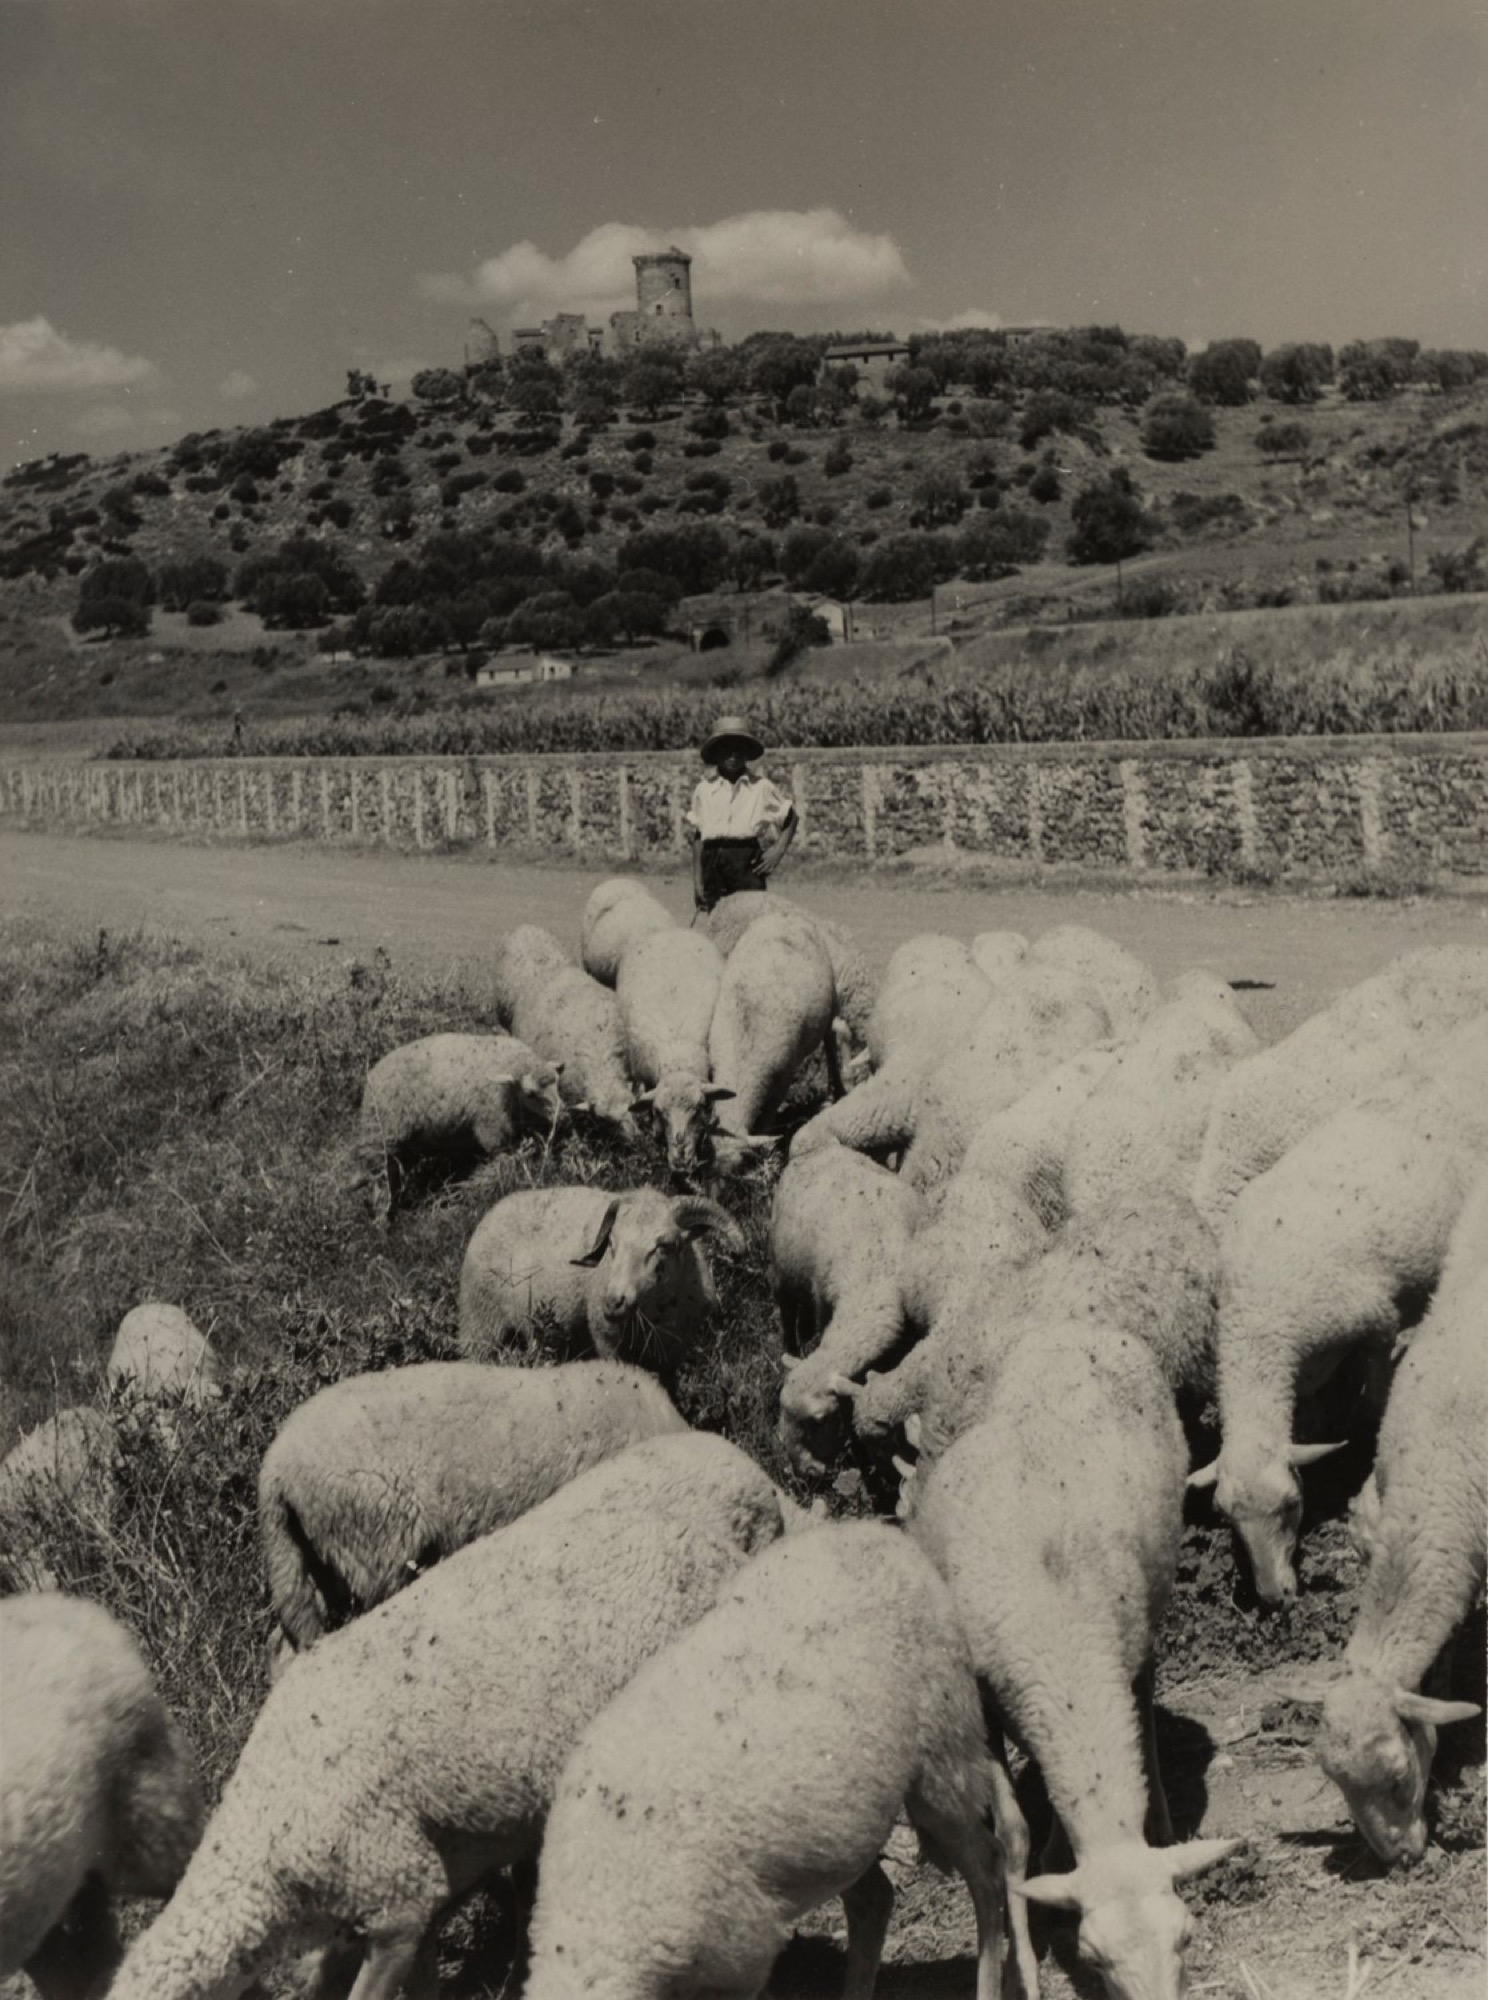 Giulio Parisio - Landscapes, years 1930/1940 - Eight vintage gelatin silver prints [...] - Image 6 of 9